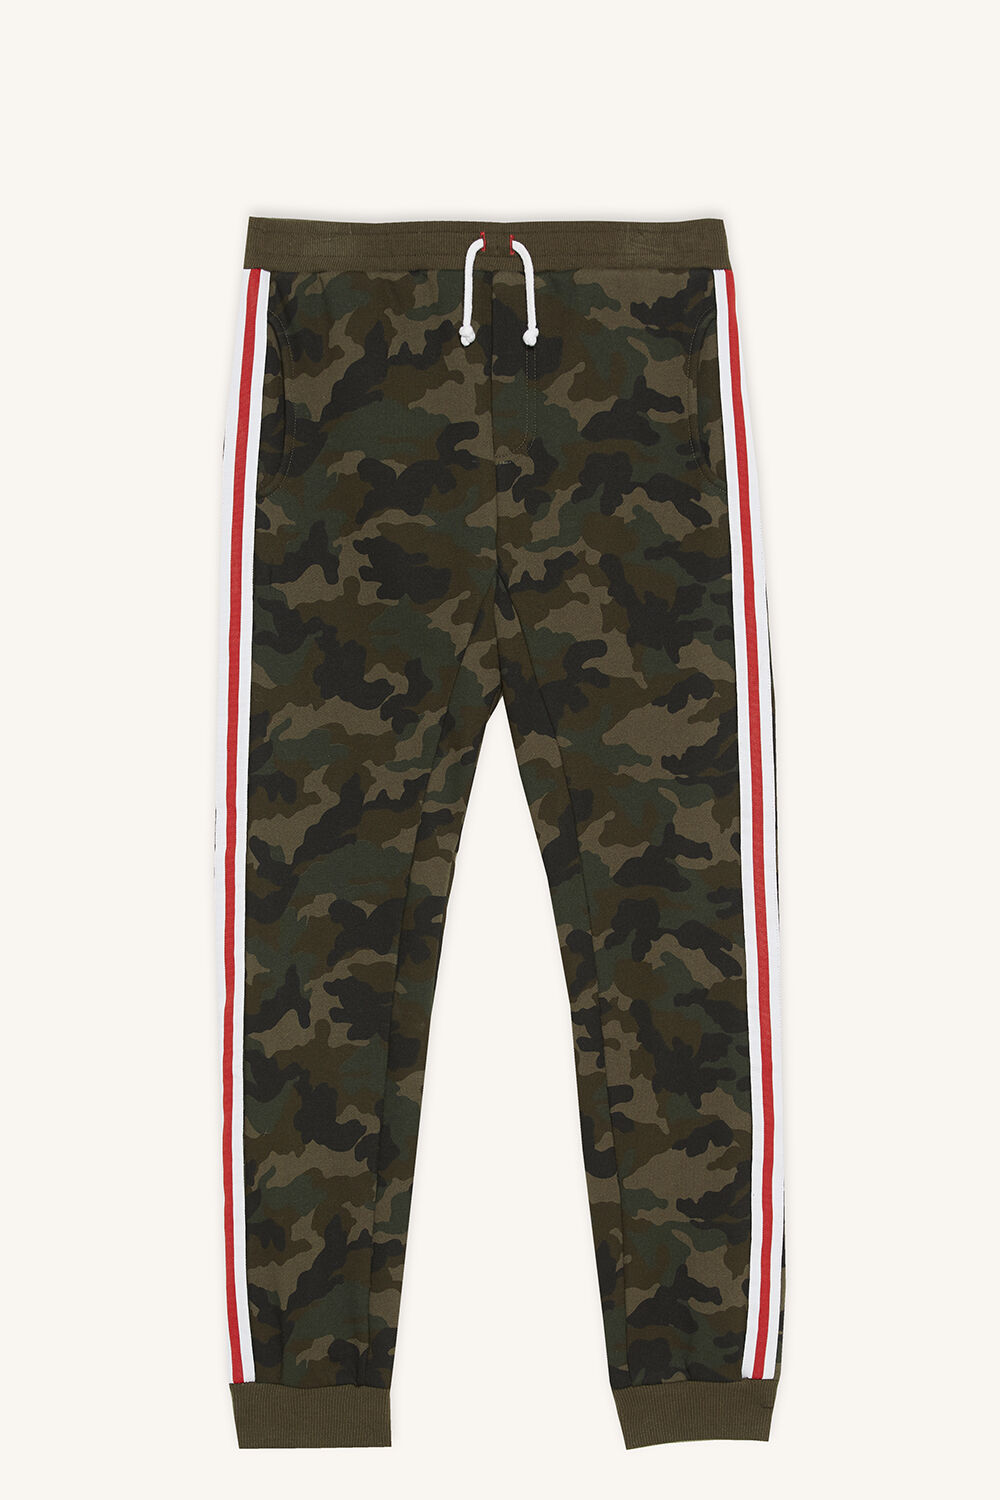 MINIMAL EFFORT TRACKY PANT in colour BURNT OLIVE